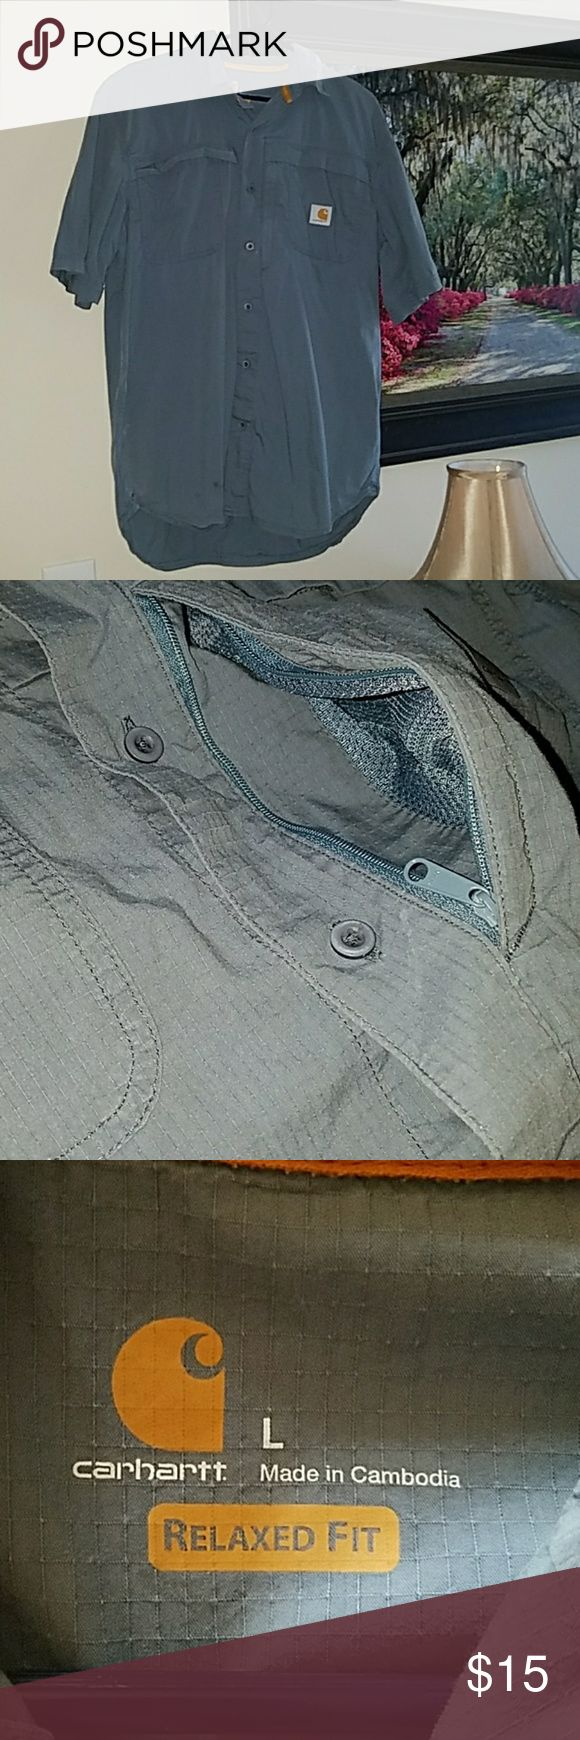 Carhartt Men's Relaxed fit Force work shirt! Men's Carhartt  Force, relaxed fit shirt with 2 chest pockets. One 'hidden' zipper pocket to store keys etc. behind Left chest pocket. Very handy! :) Only worn a couple times. Size Large in good, used condition! Carhartt Shirts Casual Button Down Shirts